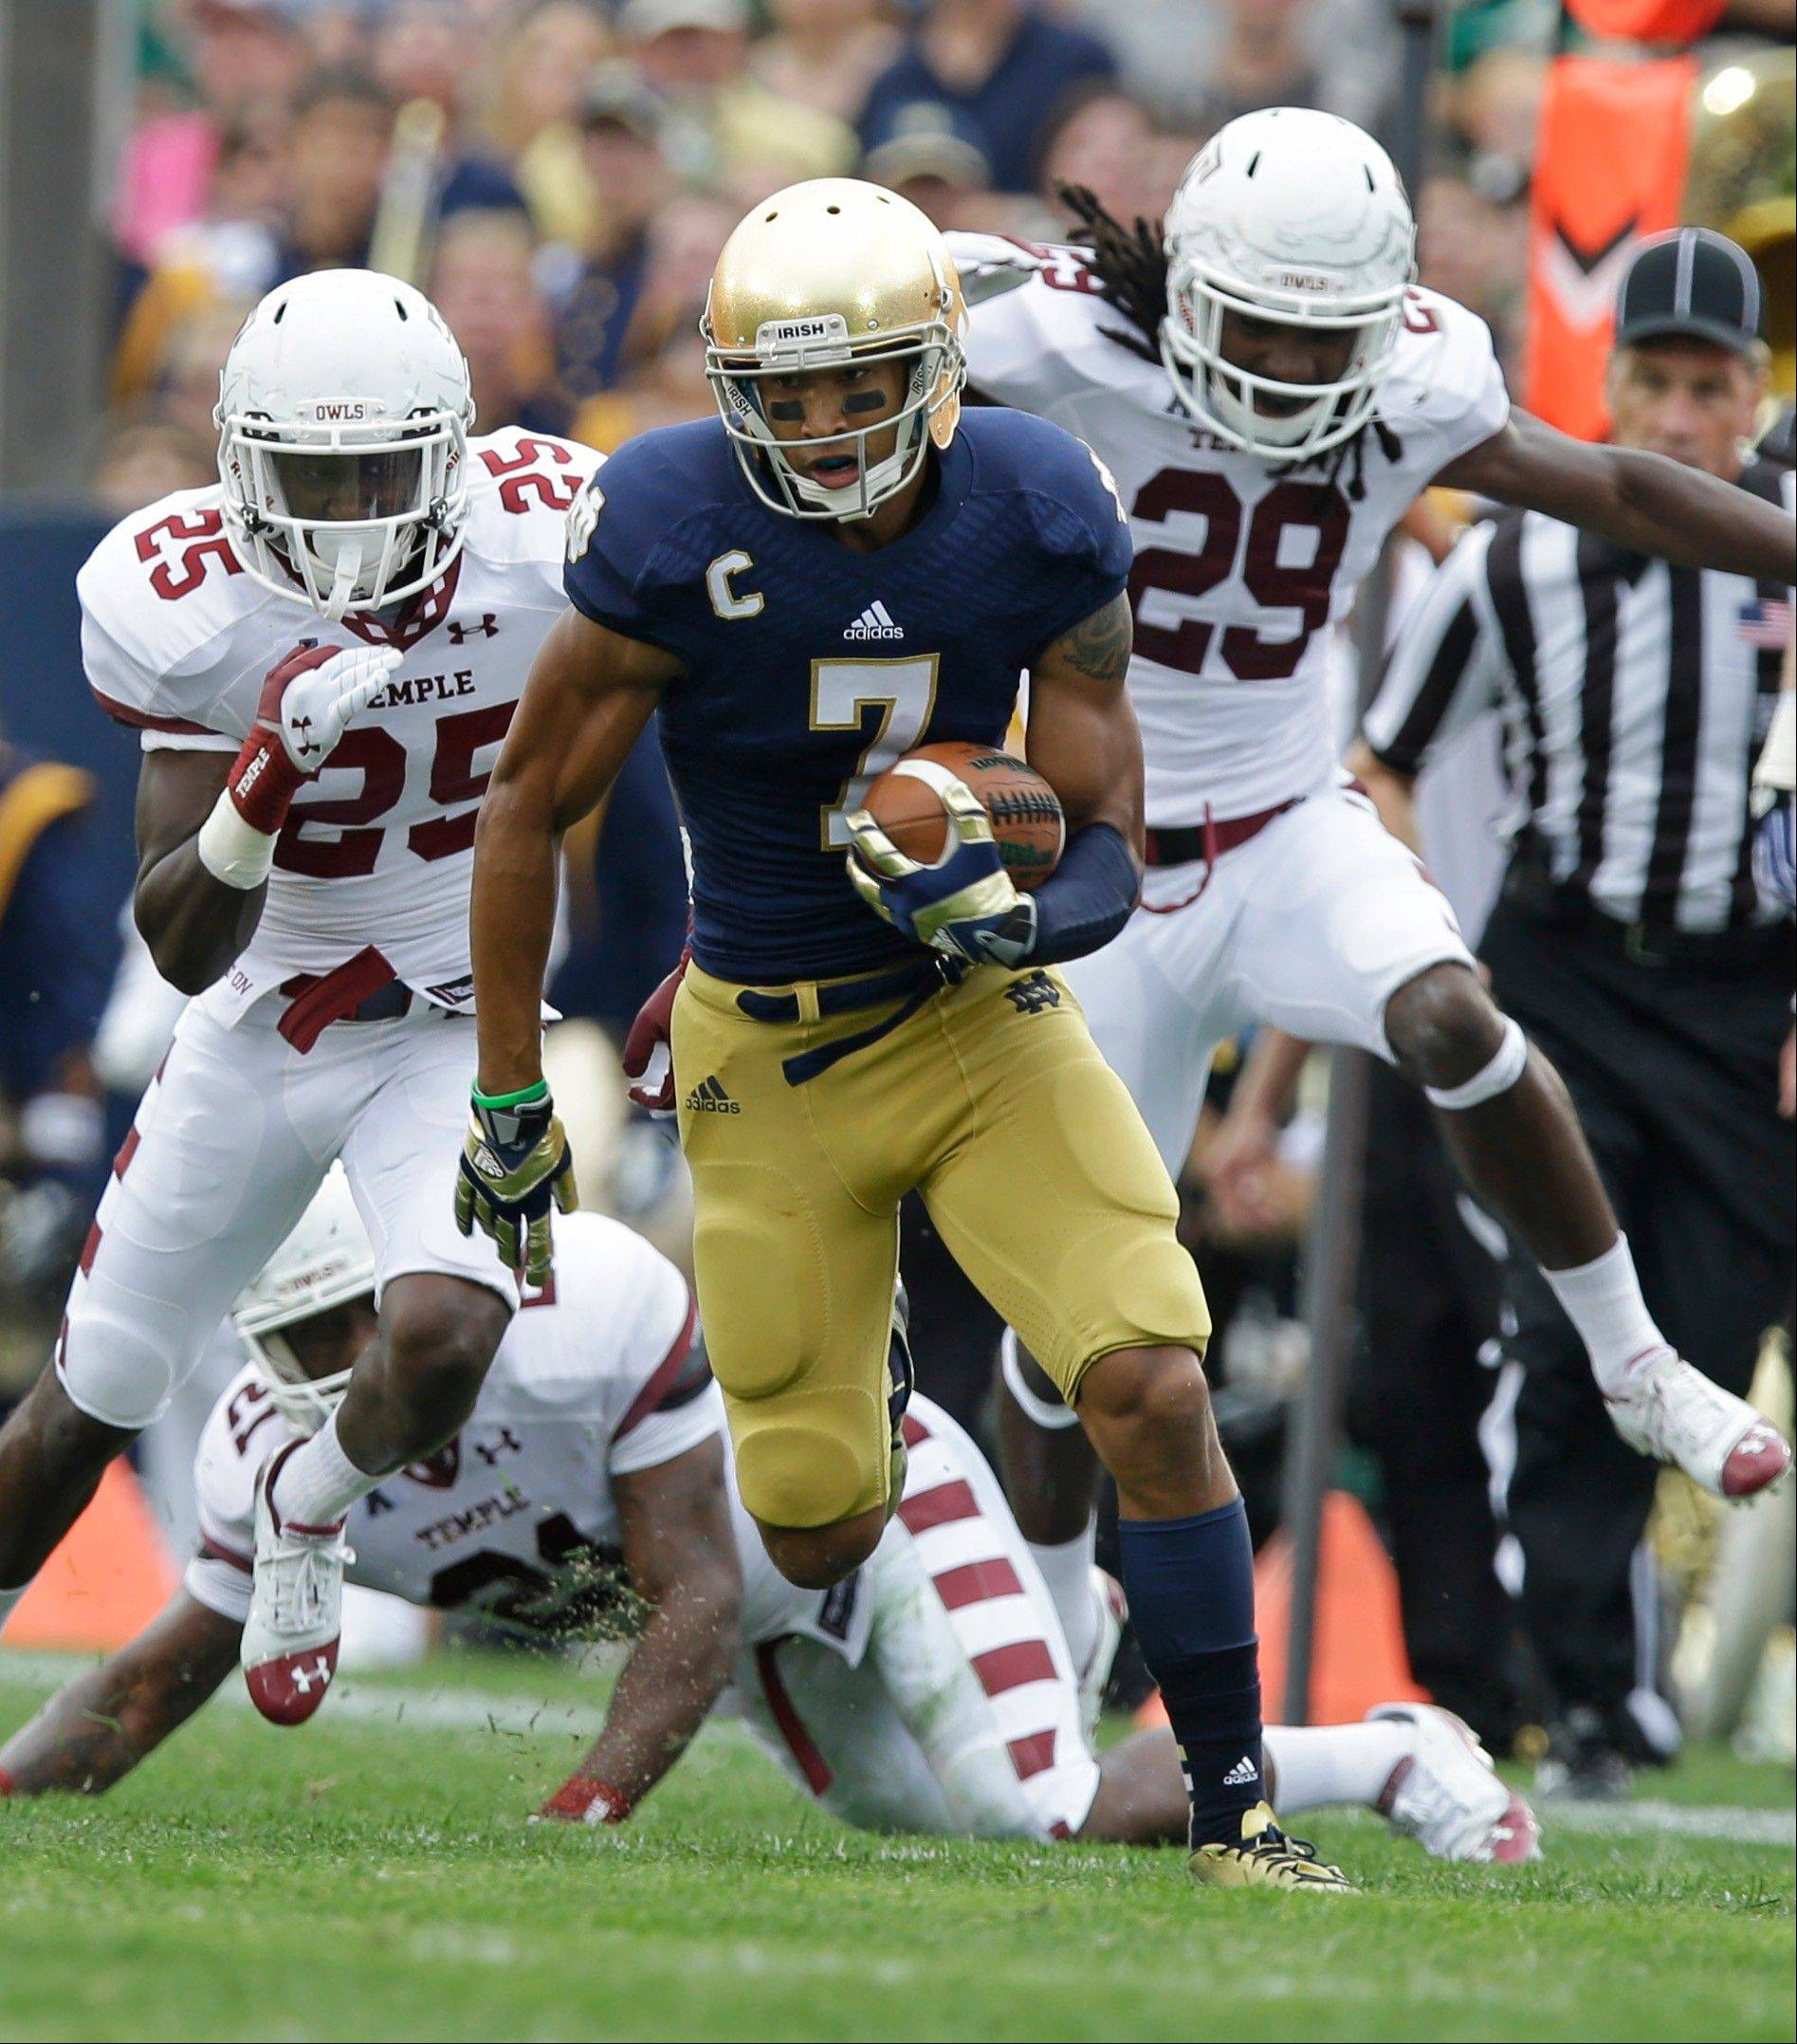 Notre Dame wide receiver TJ Jones picks up 51 yards on a catch after getting past Temple's Tavon Young (25) and Stephaun Marshall during the first half of last Saturday's game in South Bend, Ind.